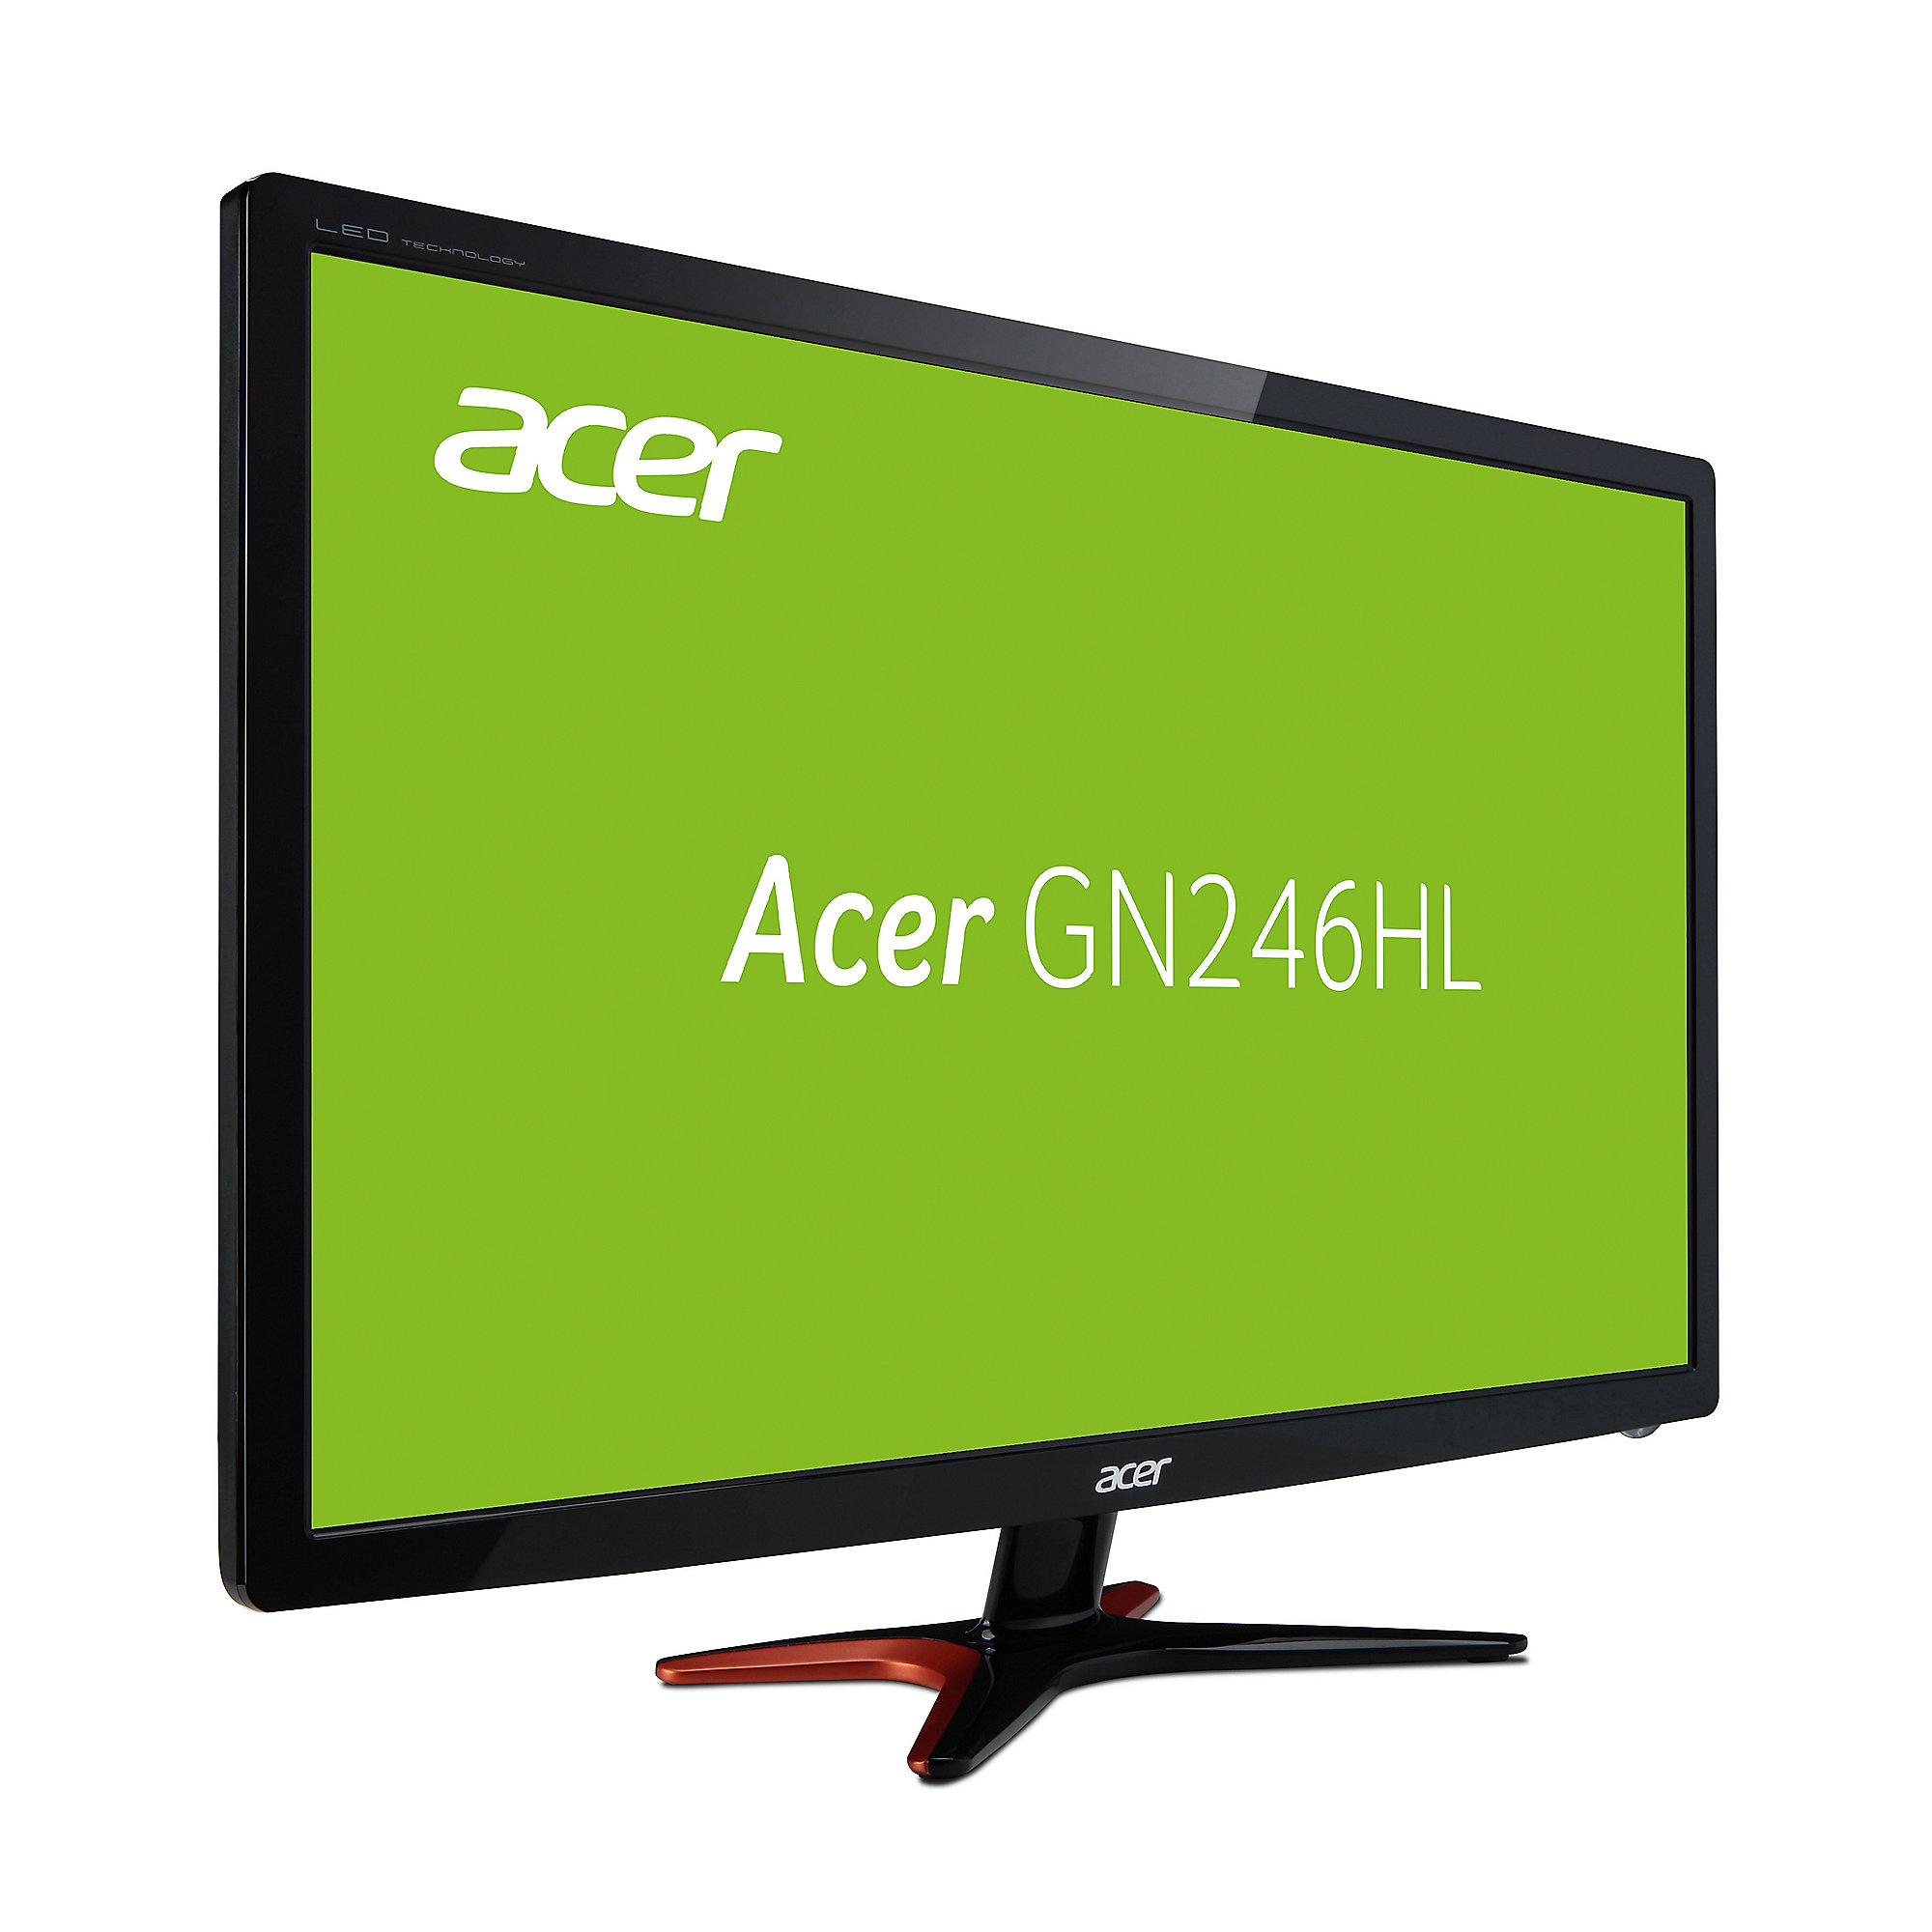 "ACER Predator GN246HLBbid 61cm (24"") Full-HD Gaming Monitor 144hz 1ms 3D ready"